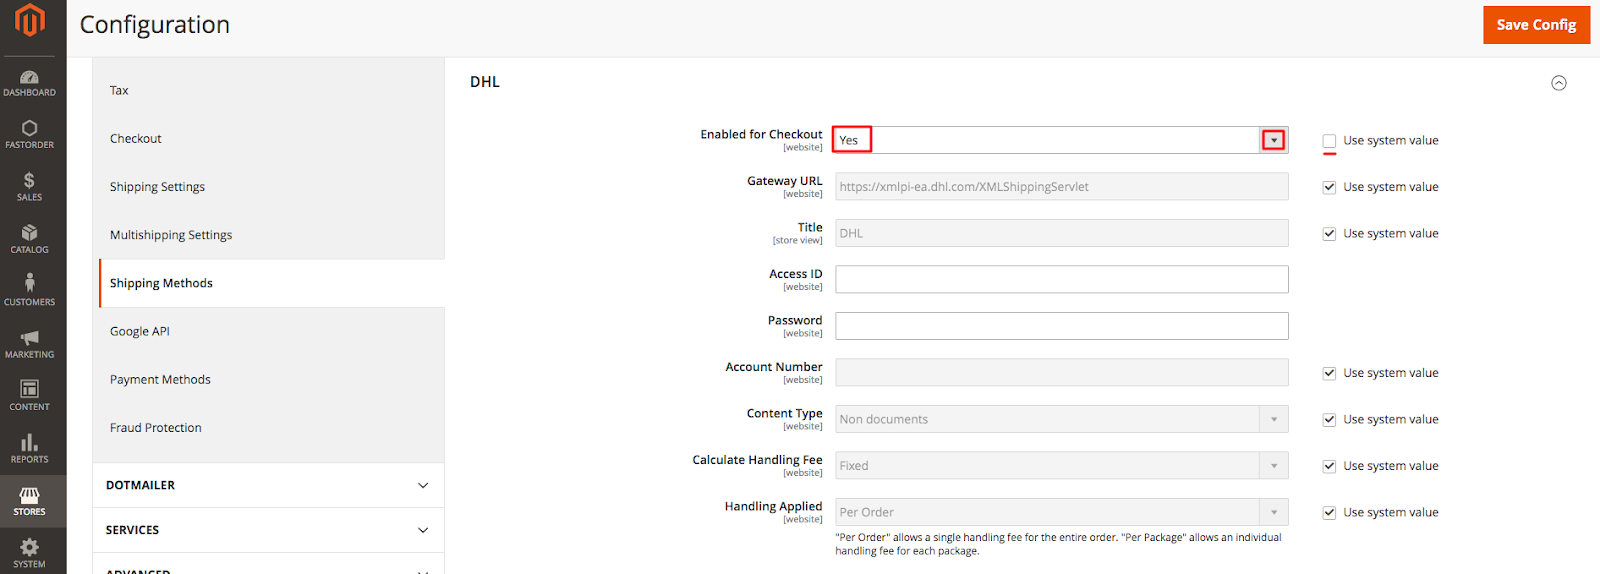 DHL in Magento Admin: Enable for Checkout